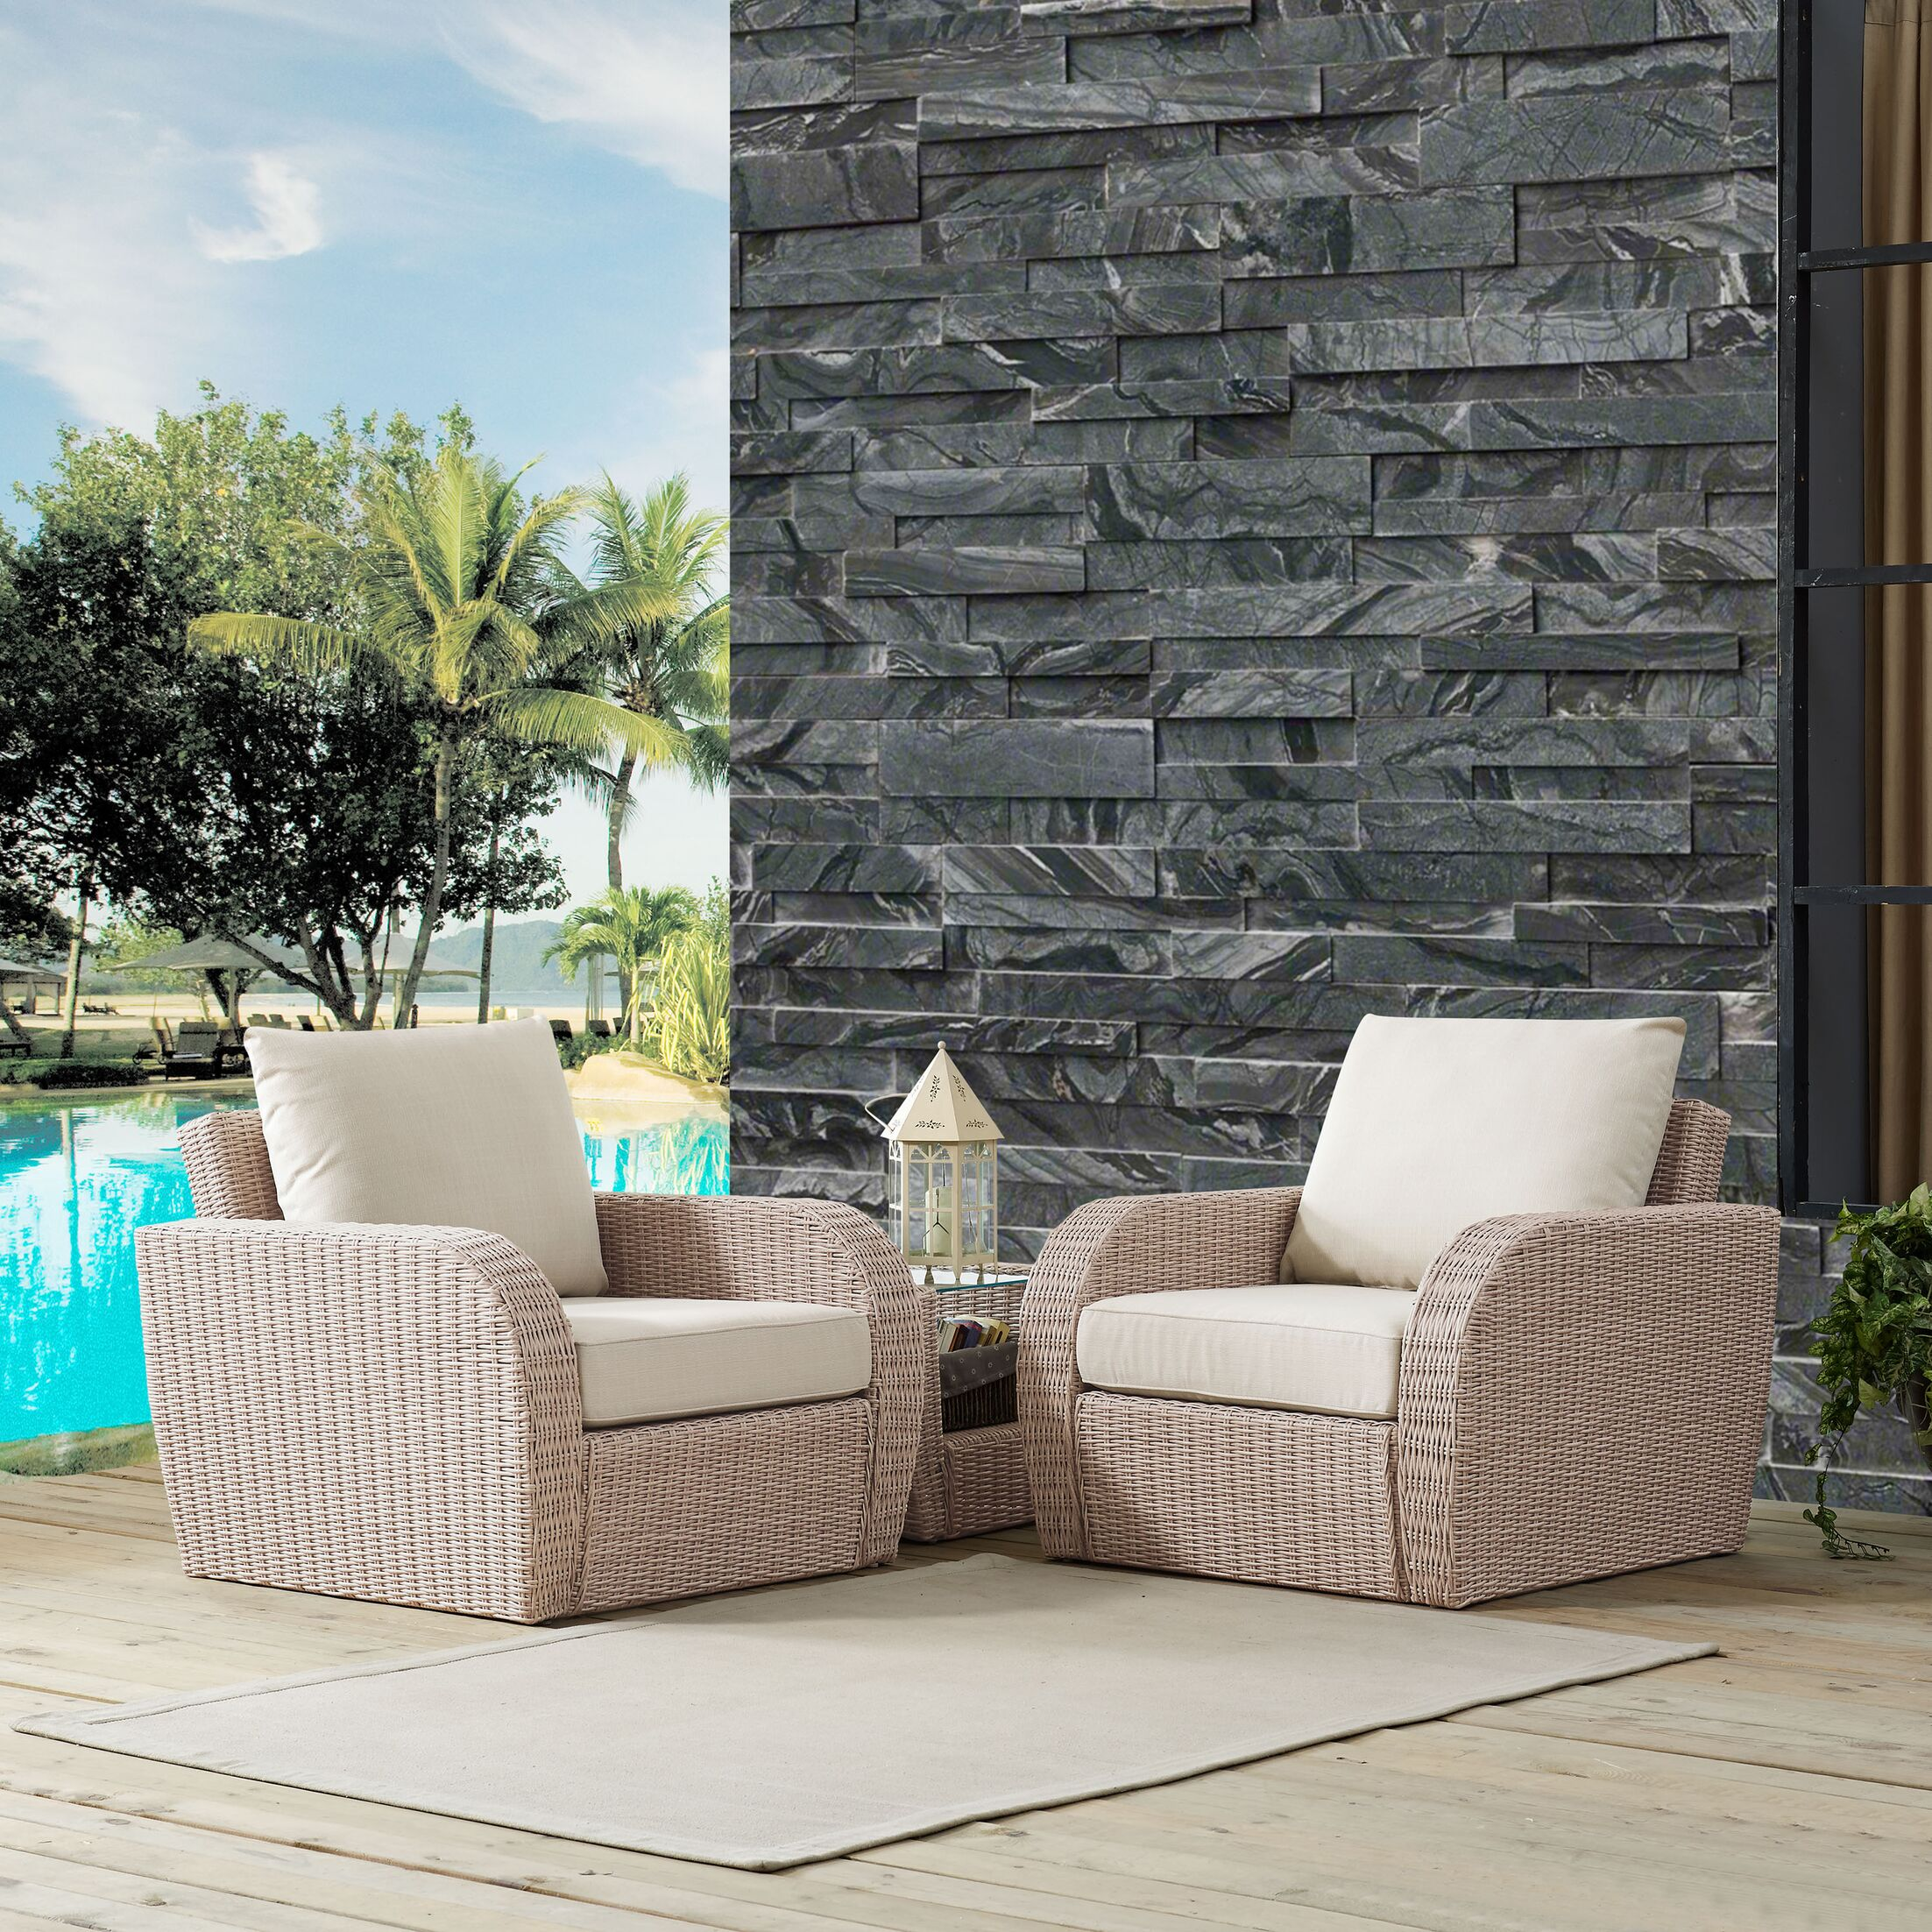 Boomer 3 Piece Conversation Set with Cushions Cushion Color: Oatmeal